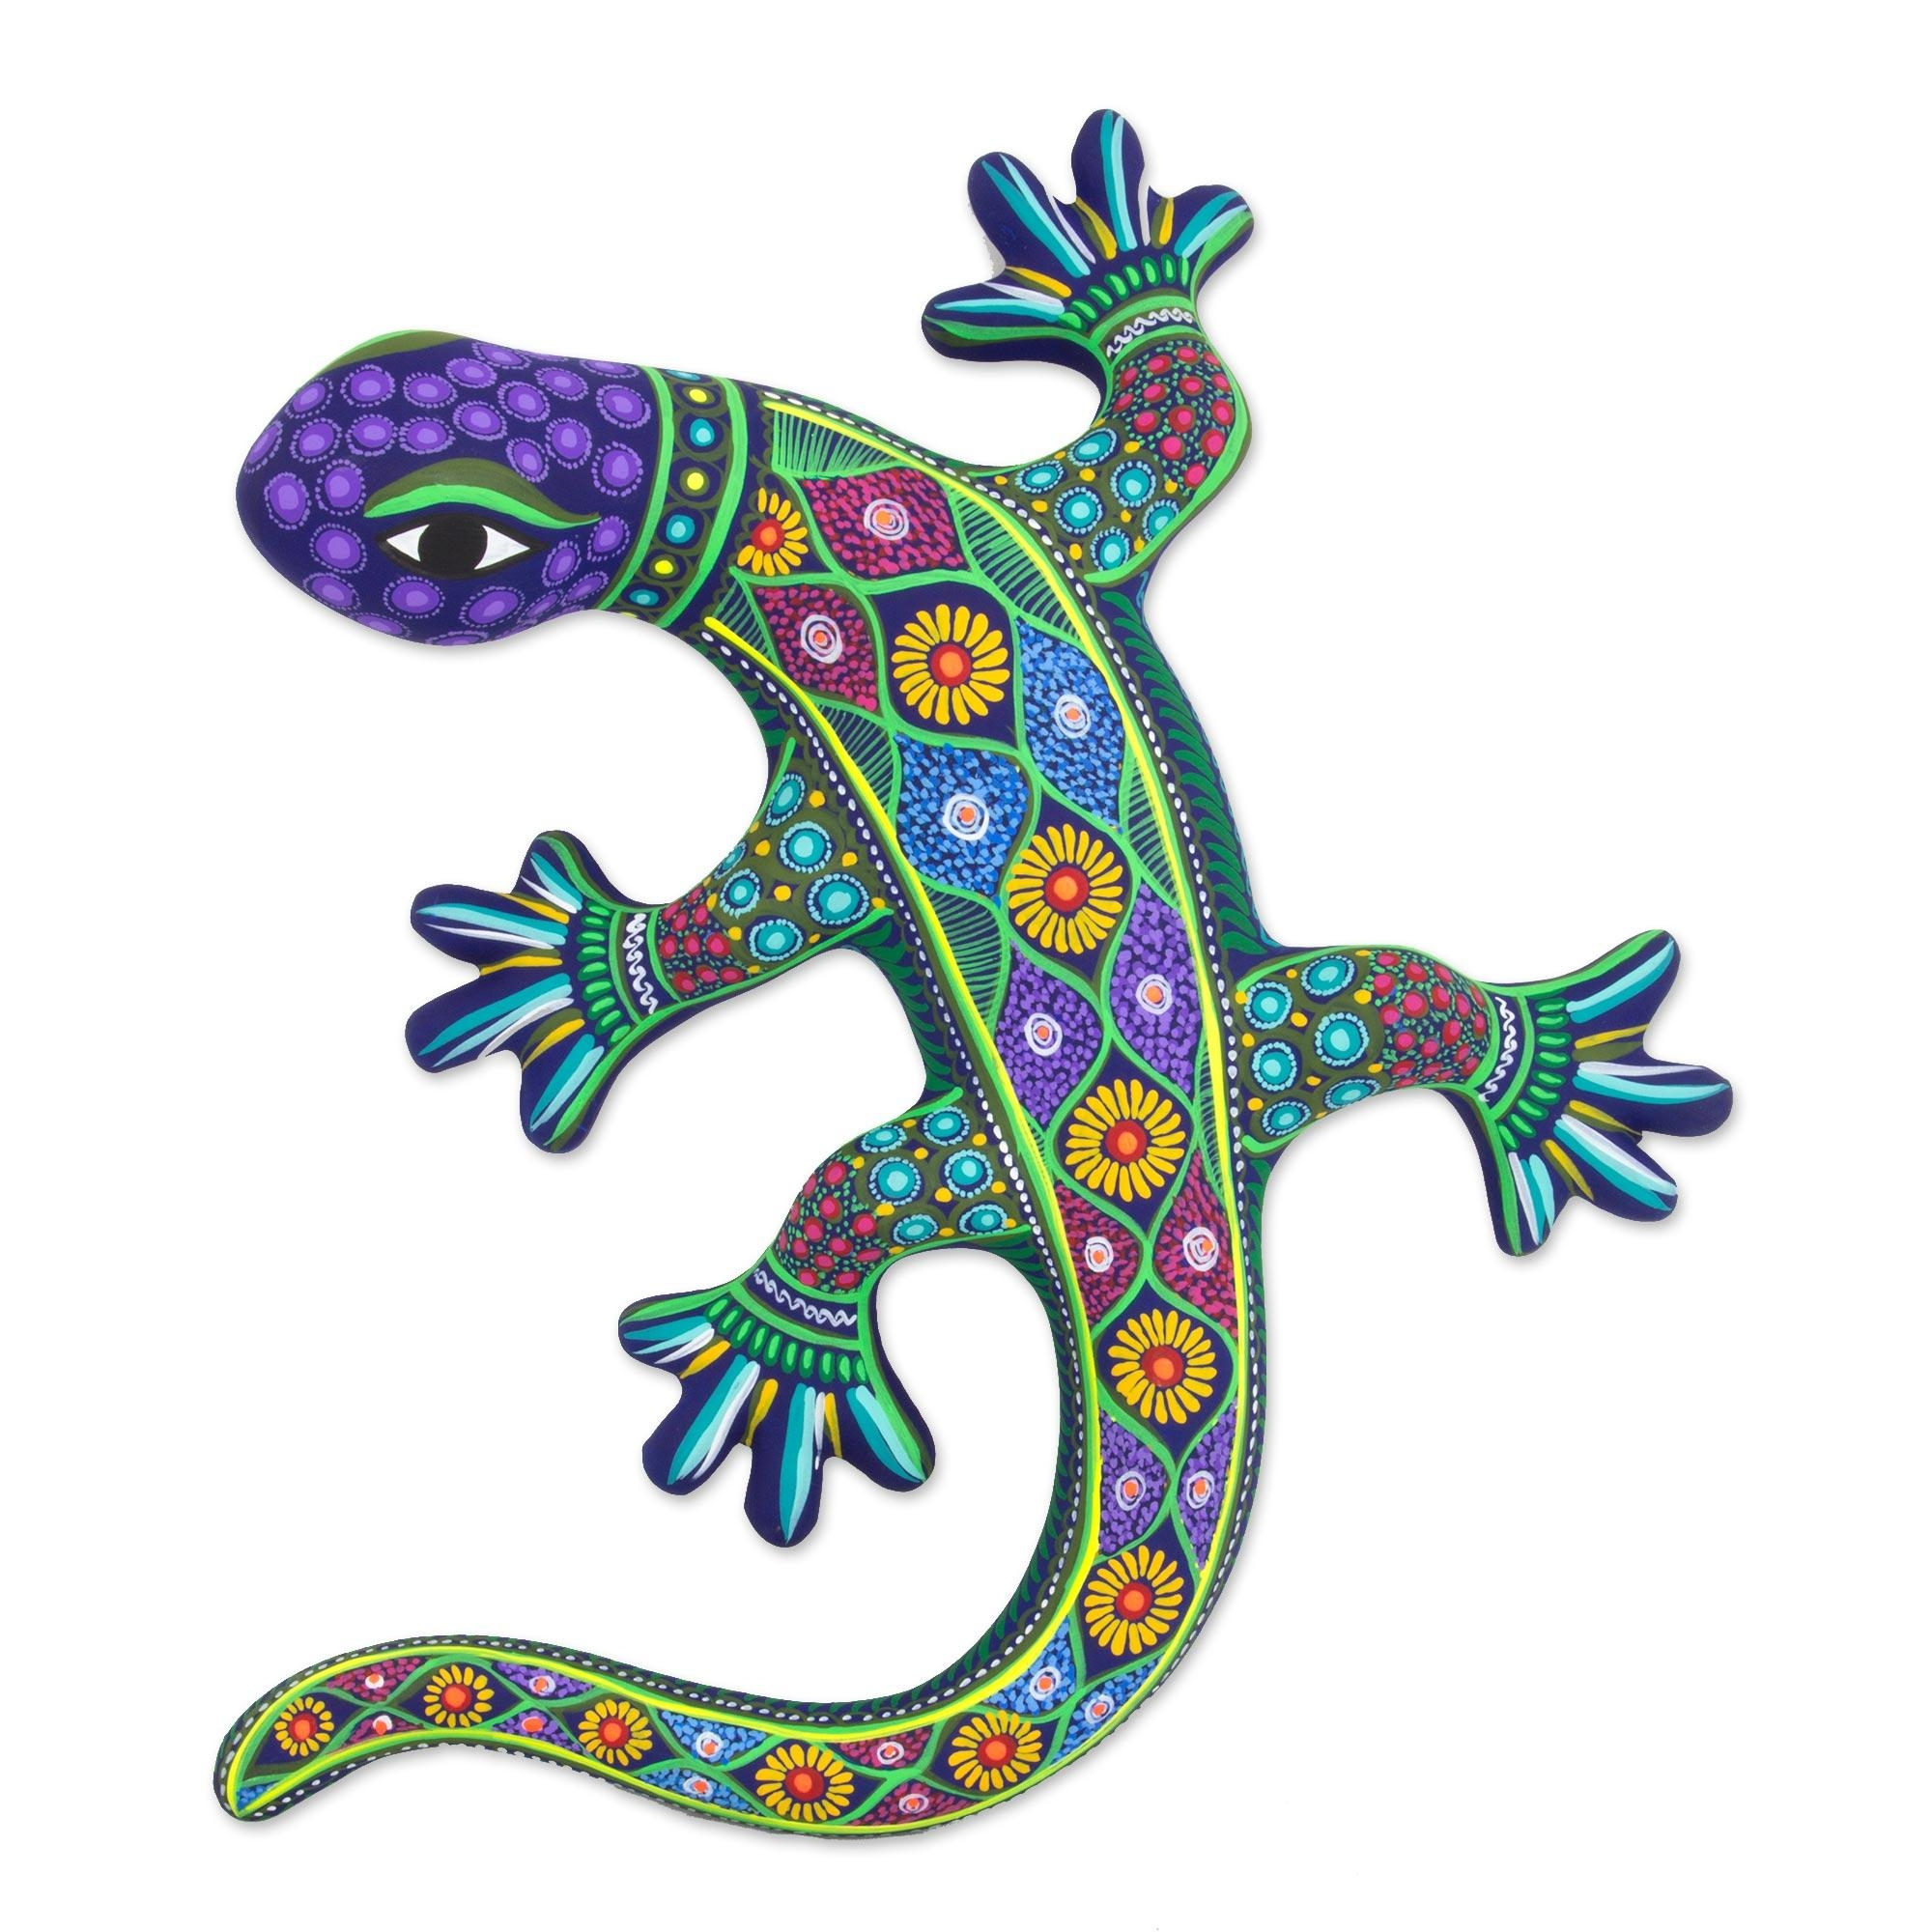 Handcrafted Ceramic Lizard Wall Art From Mexico – Desert Lizard Within Mexican Ceramic Wall Art (Image 5 of 20)